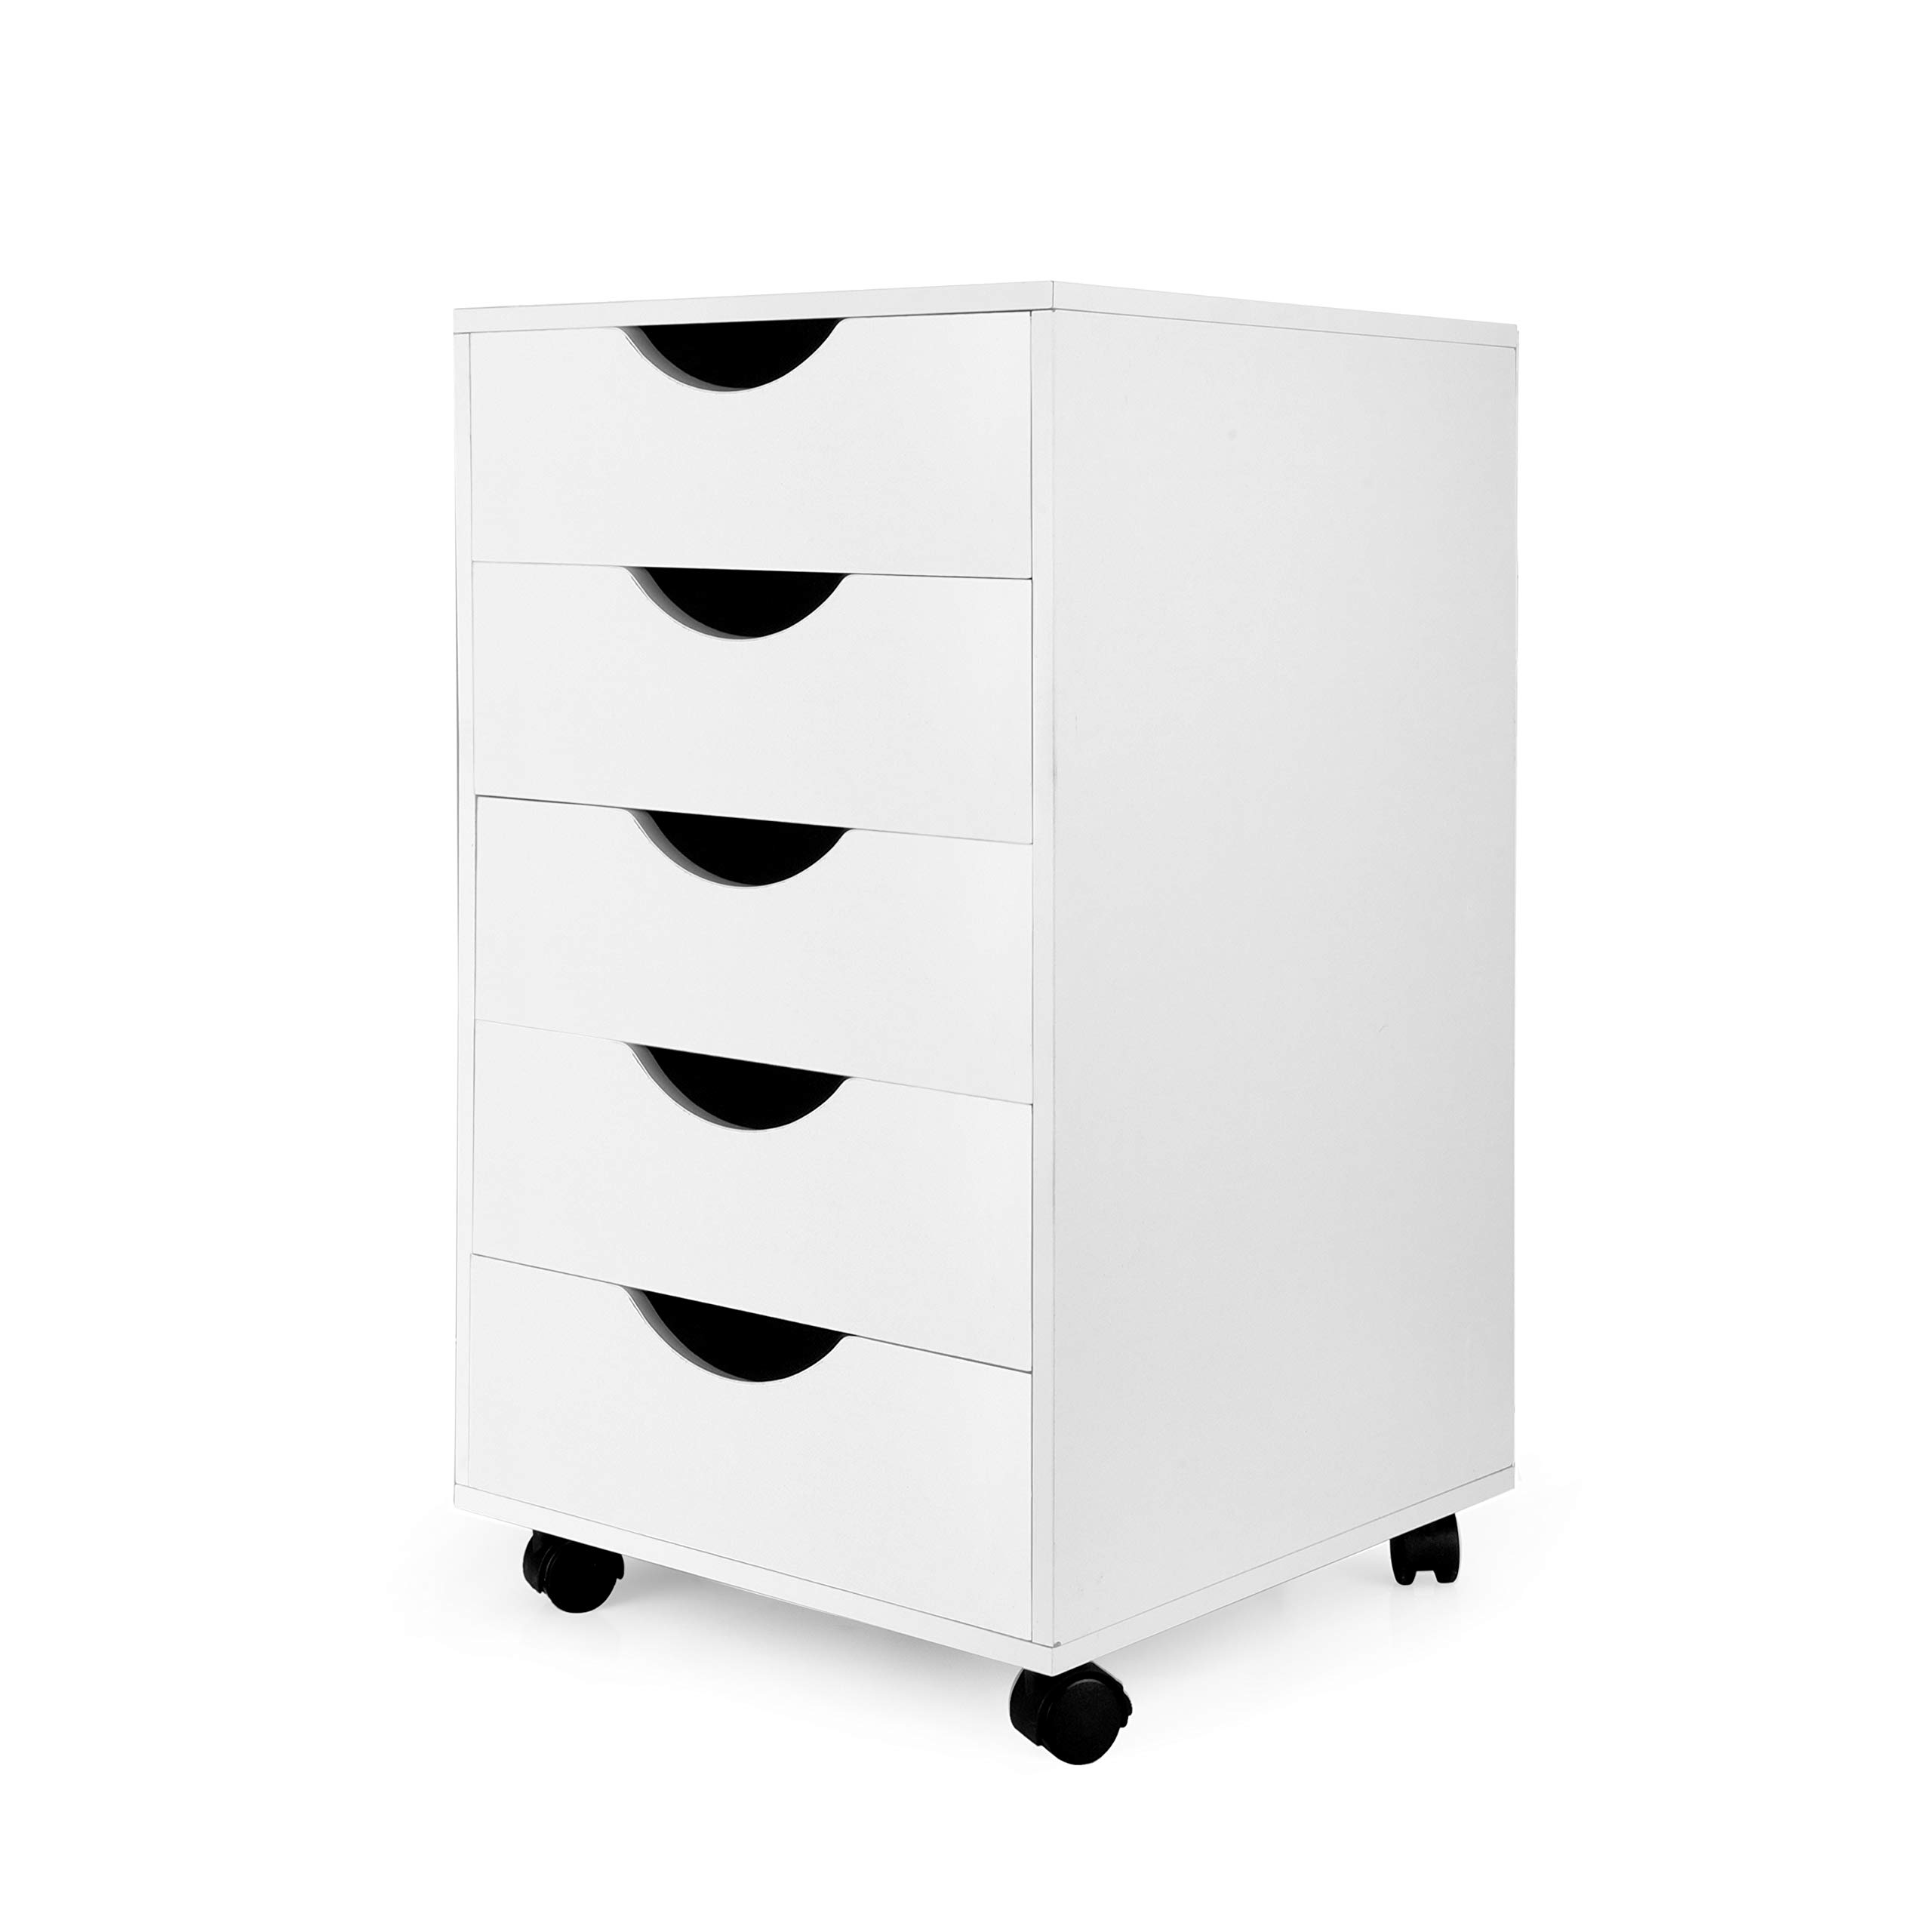 eMerit 5 Drawer Wood File Cabinet Roll Cart Drawer for Office Organization White by EMERIT (Image #1)